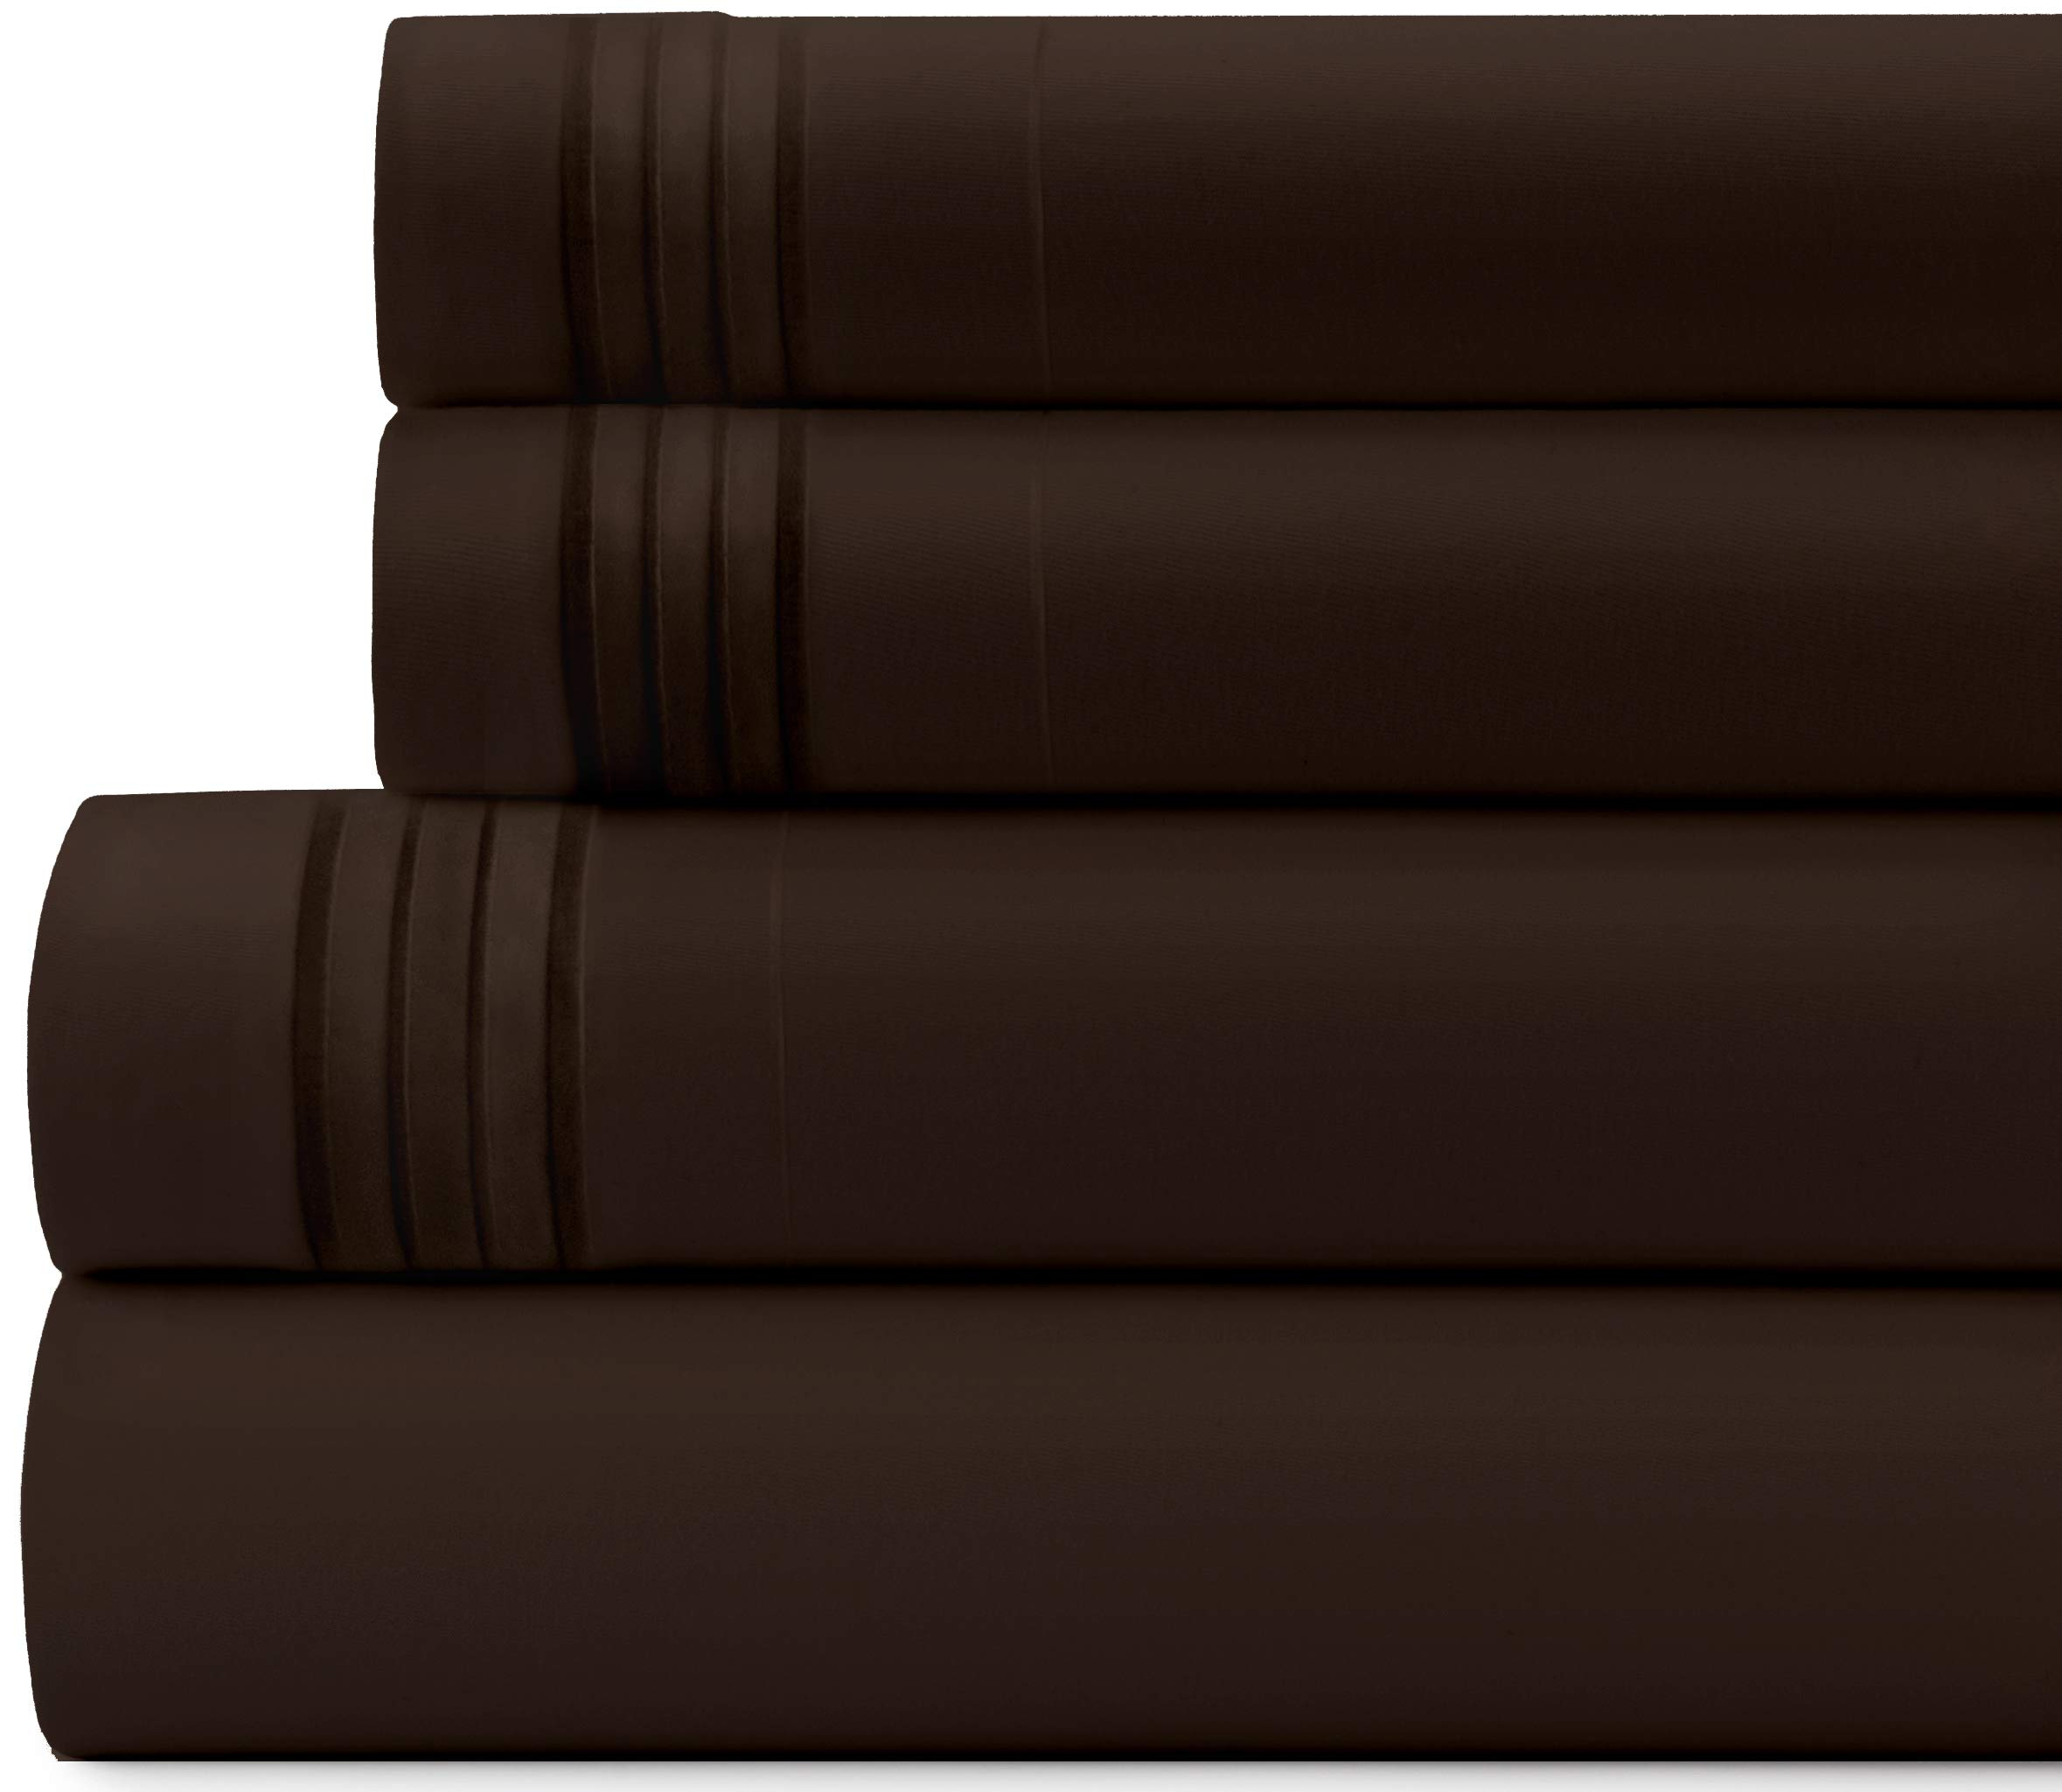 Briarwood Home Bed Sheet Set – Brushed Microfiber 1900 Premium Quality Soft Fabric Breathable Bedding – Deep Pocket – Wrinkle, Fade & Shrinkage Resistant 3 Piece Sheets (Twin-XL/Chocolate)